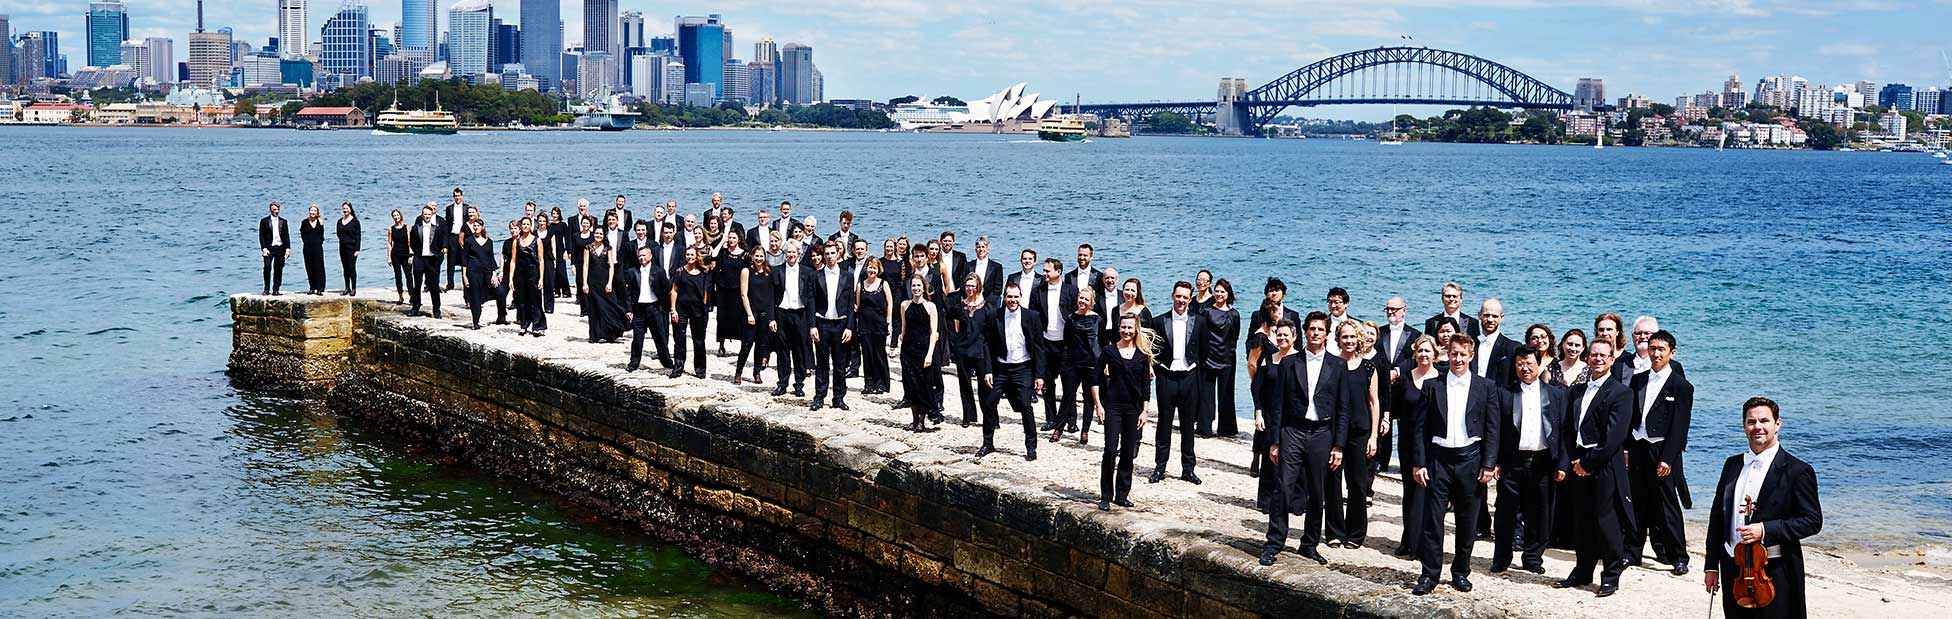 Orchestra posing for photo in front of Sydney Harbour Bridge